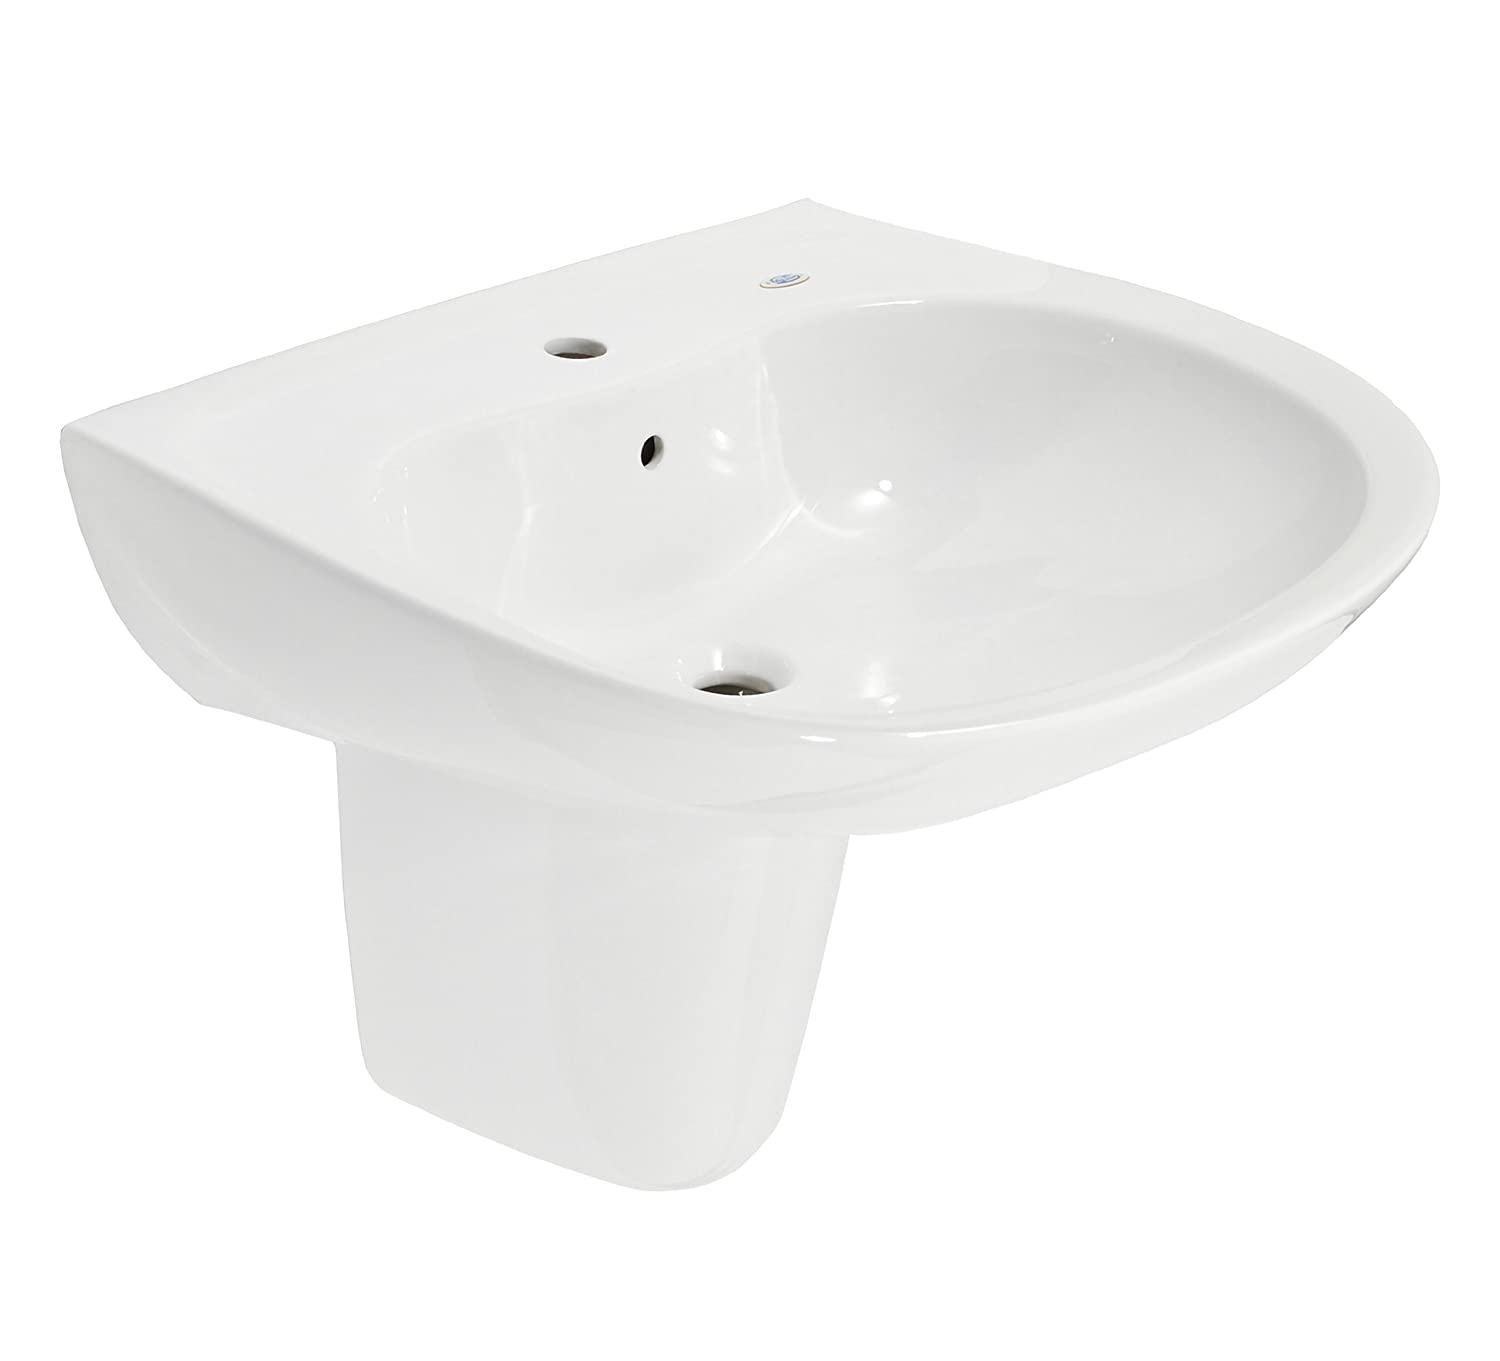 TOTO LHT242G#01 Prominence Lavatory and Shroud with Single Hole, Cotton White durable service